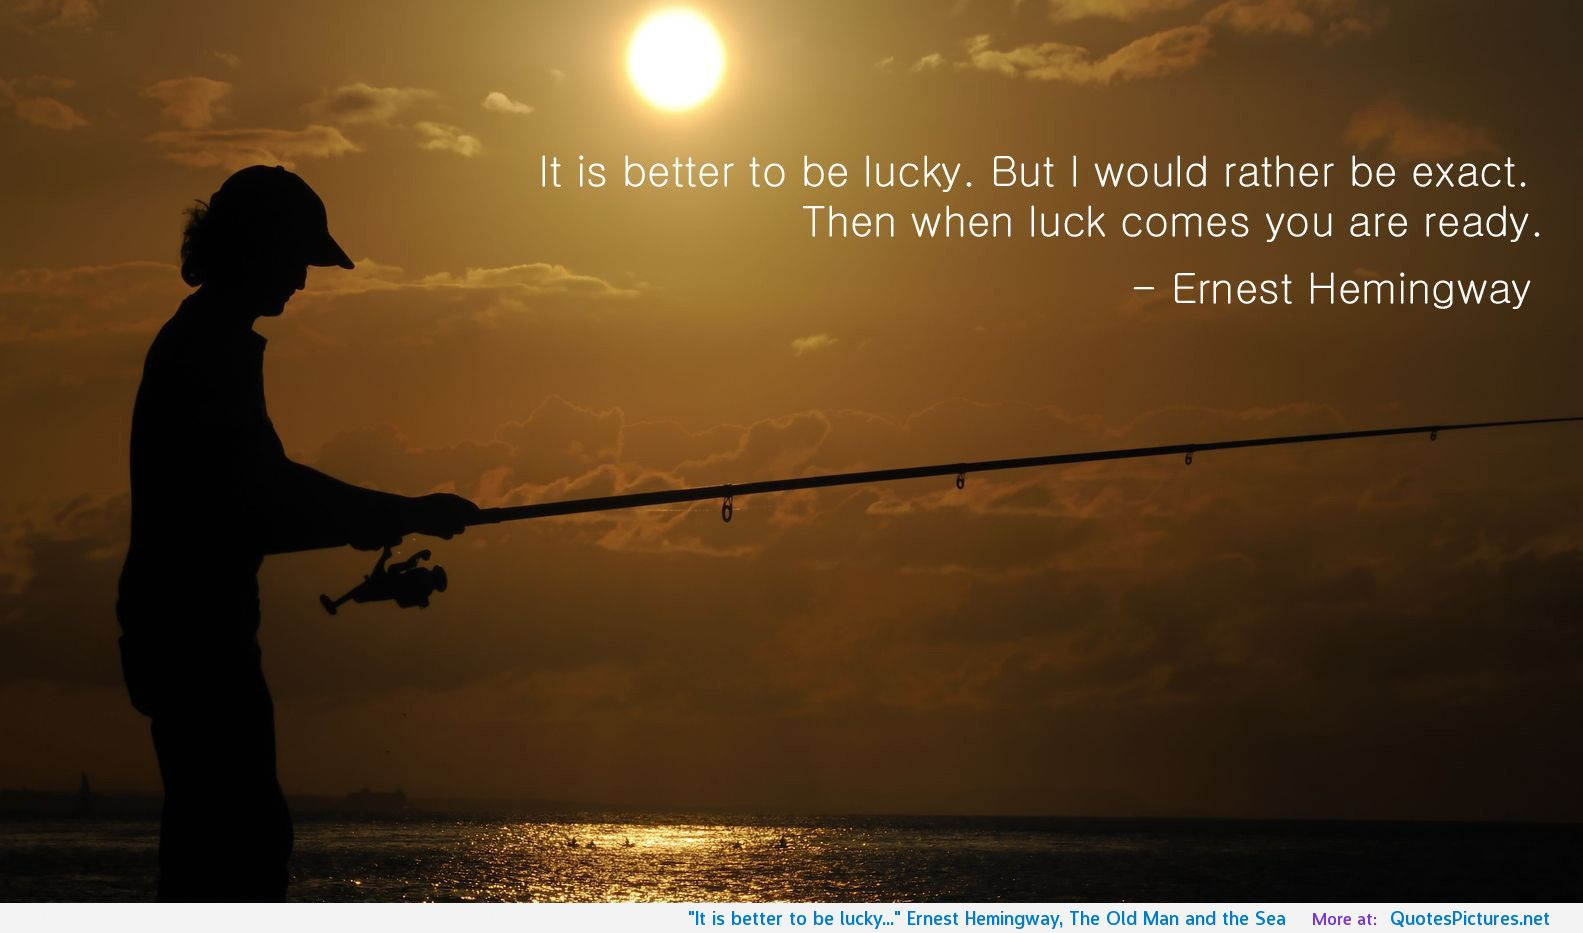 Quotes About Love And Sailing Quotesgram: Sailing Quotes Hemingway. QuotesGram